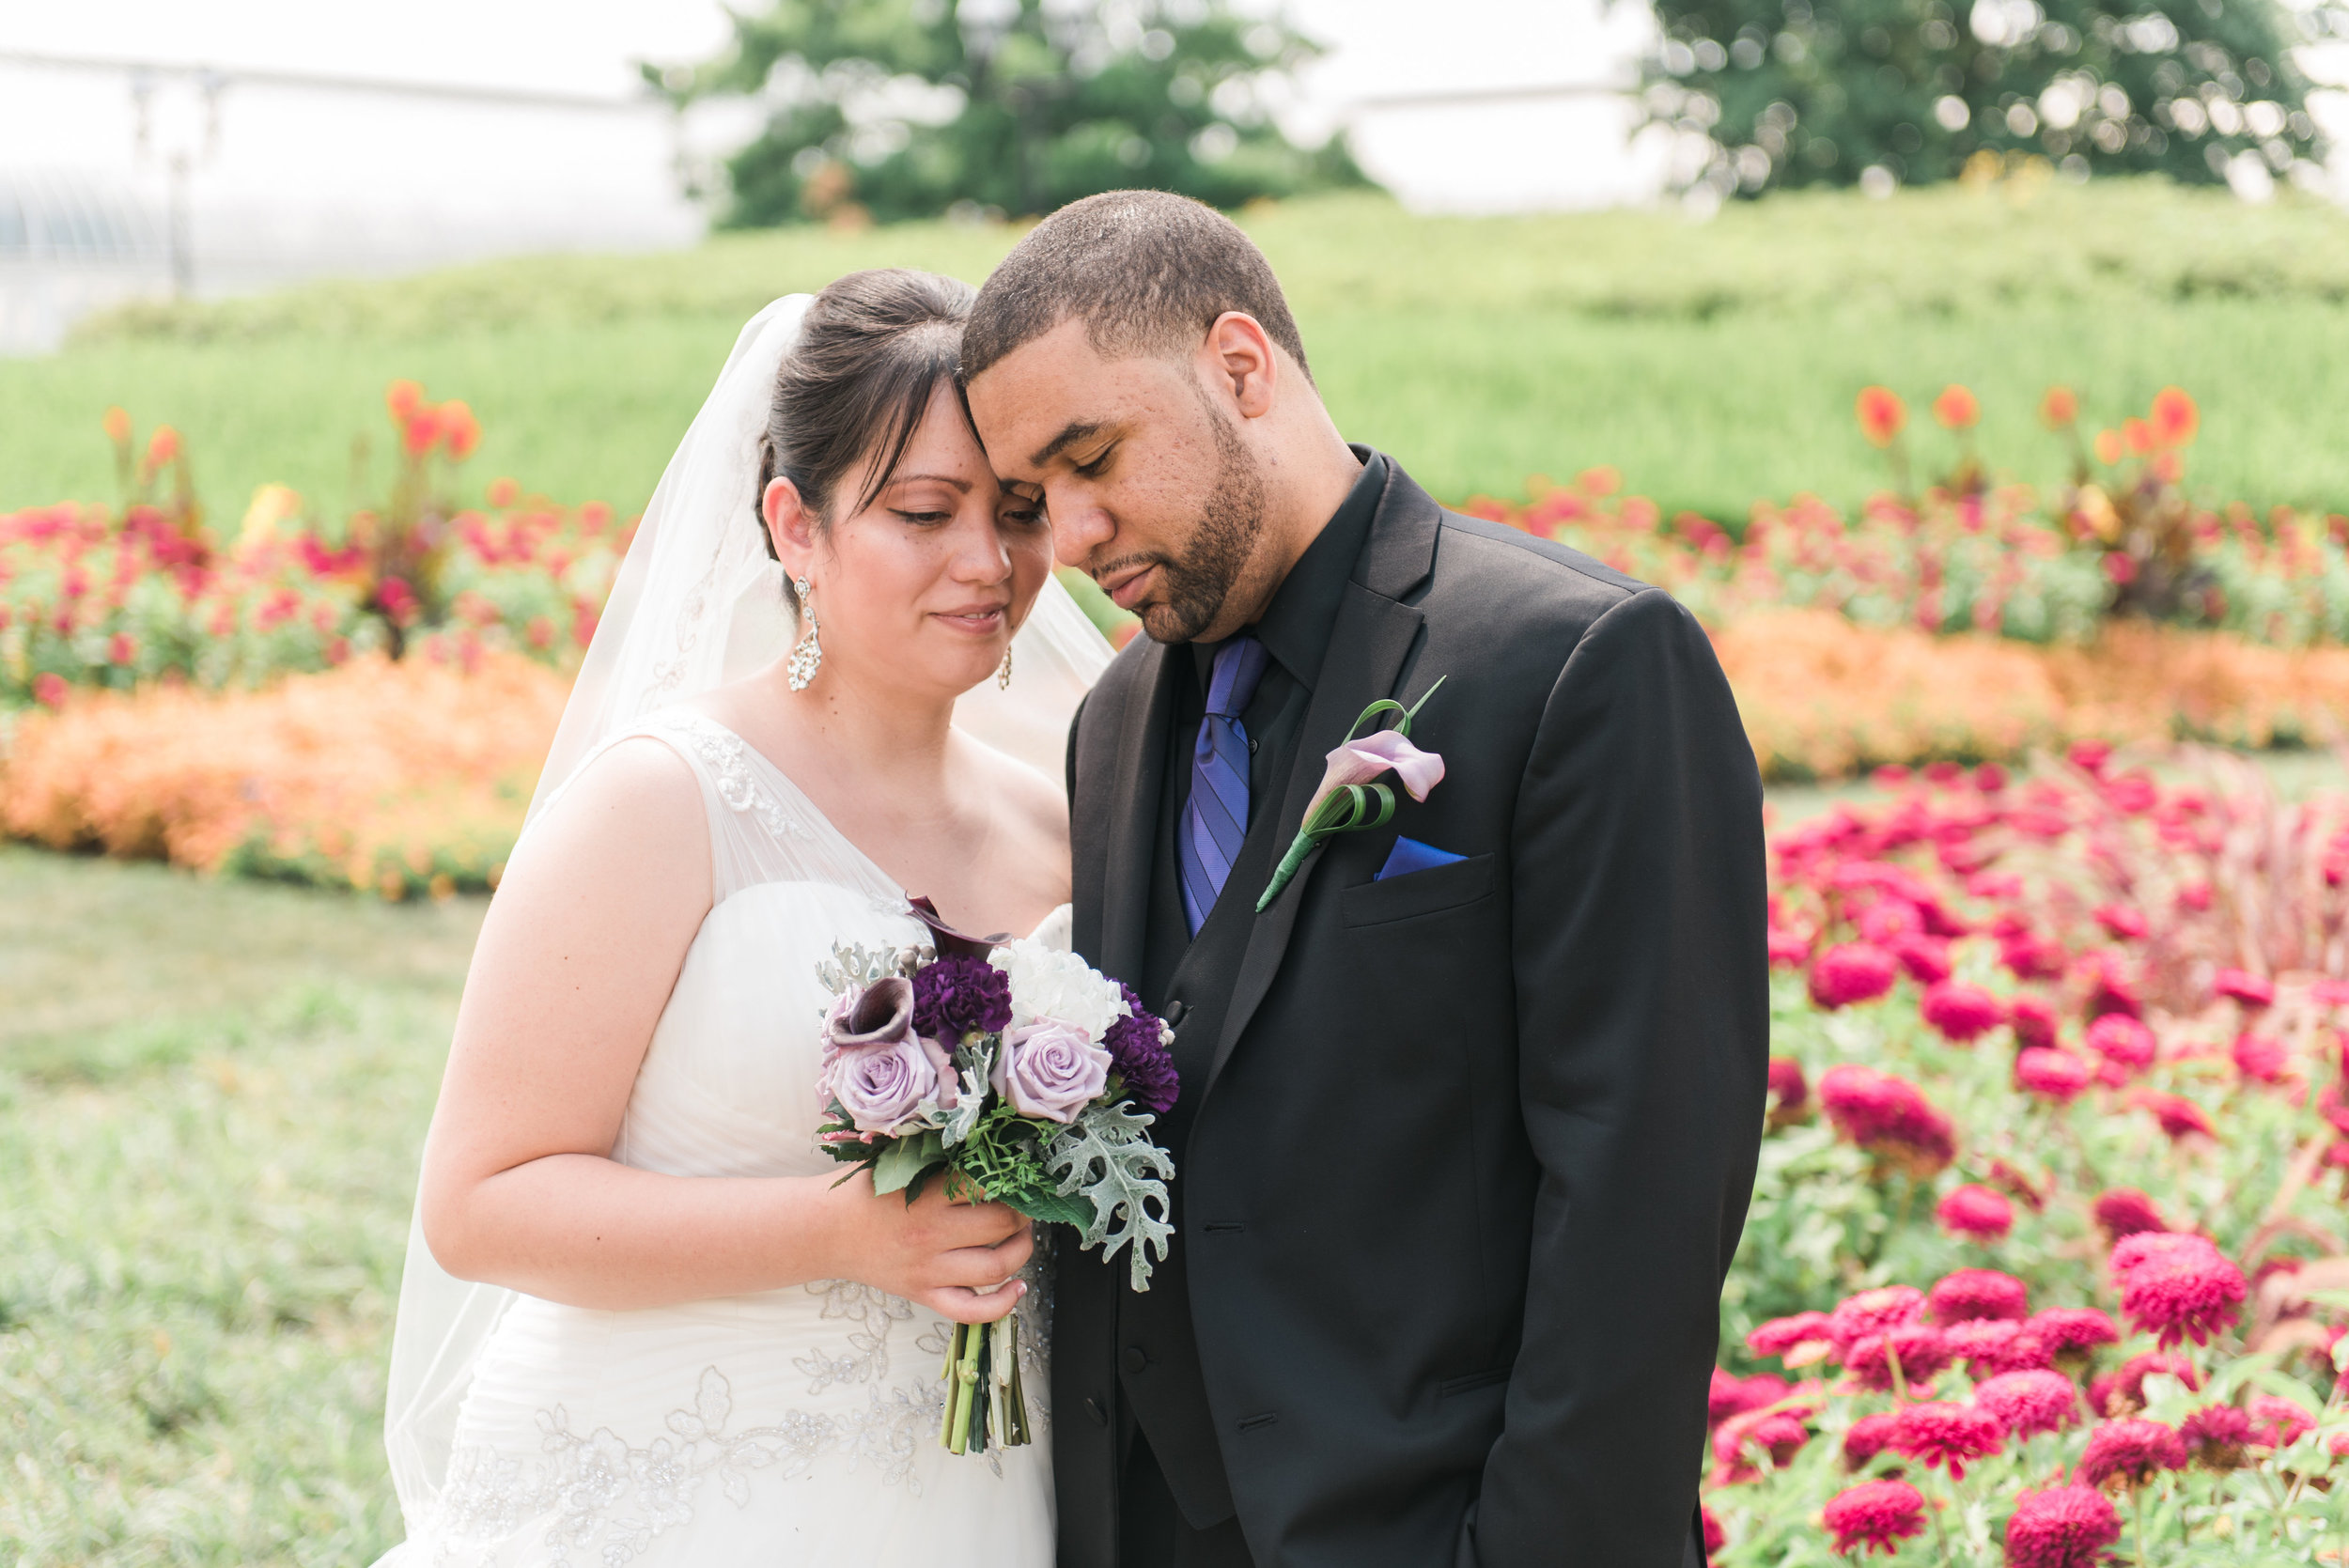 Pittsburgh Wedding Photographers | Modern Wedding Photography | Pittsburgh, PA | Natalya and Sam 32